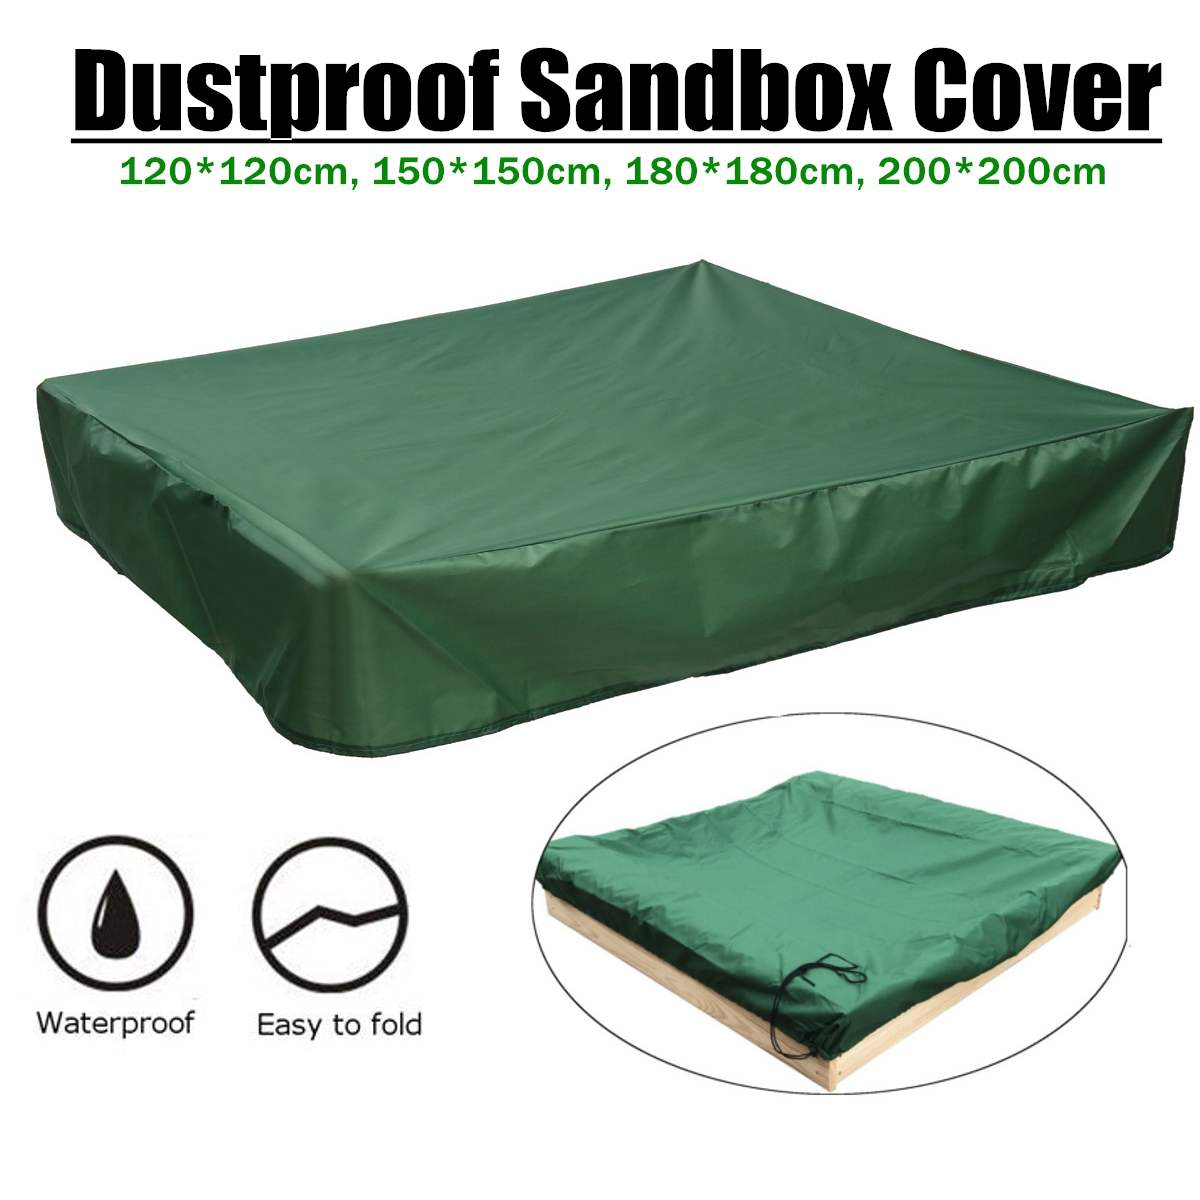 120/150/180/200cm Waterproof Oxford Dust Cover Square Drawstring Sandbox Sandpit Dustproof Cover Canopy Shelter Cloth Green